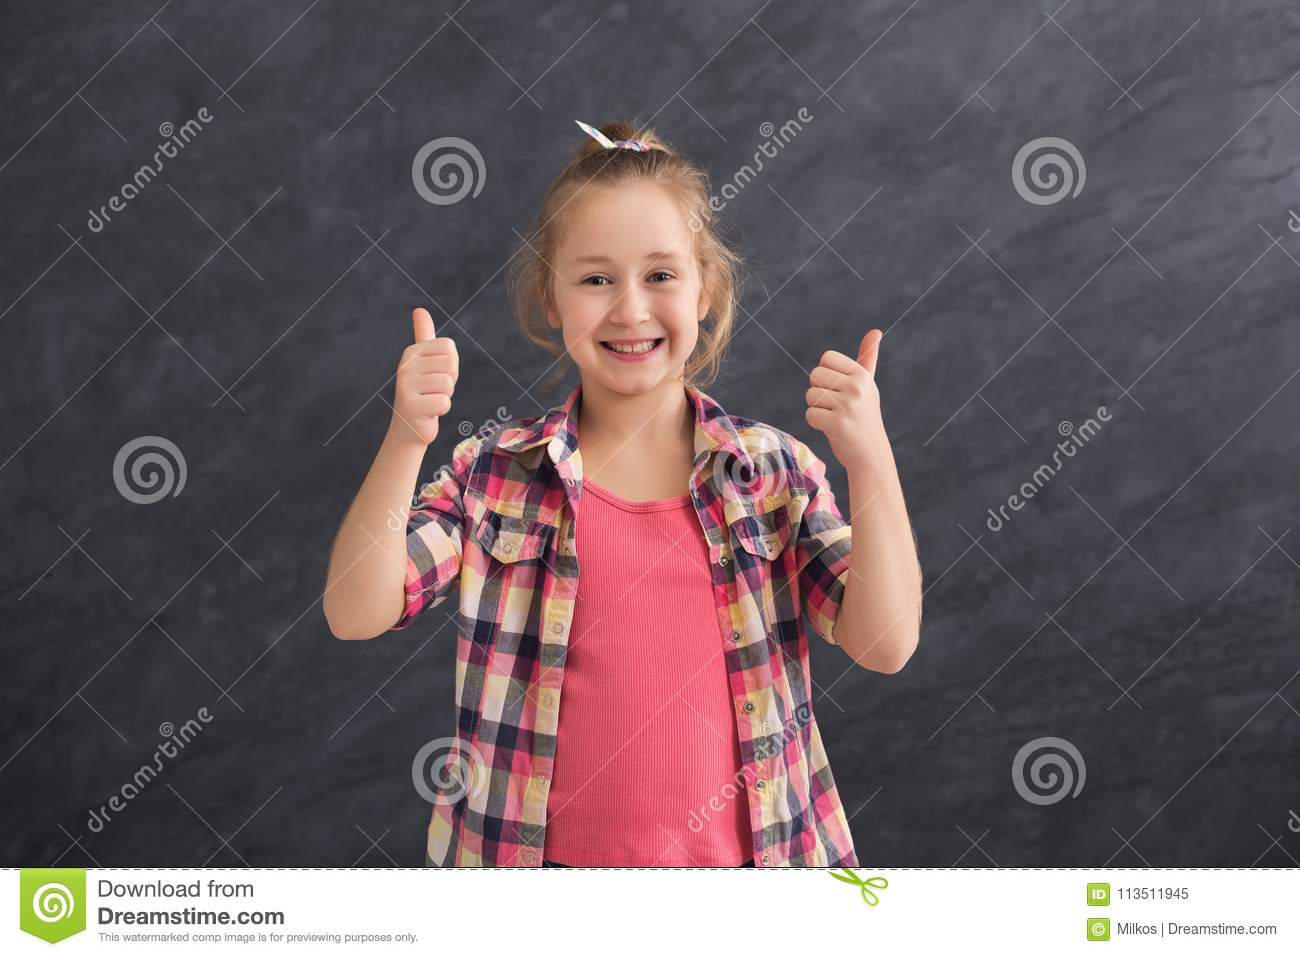 Casual little girl showing thumbs up at gray background